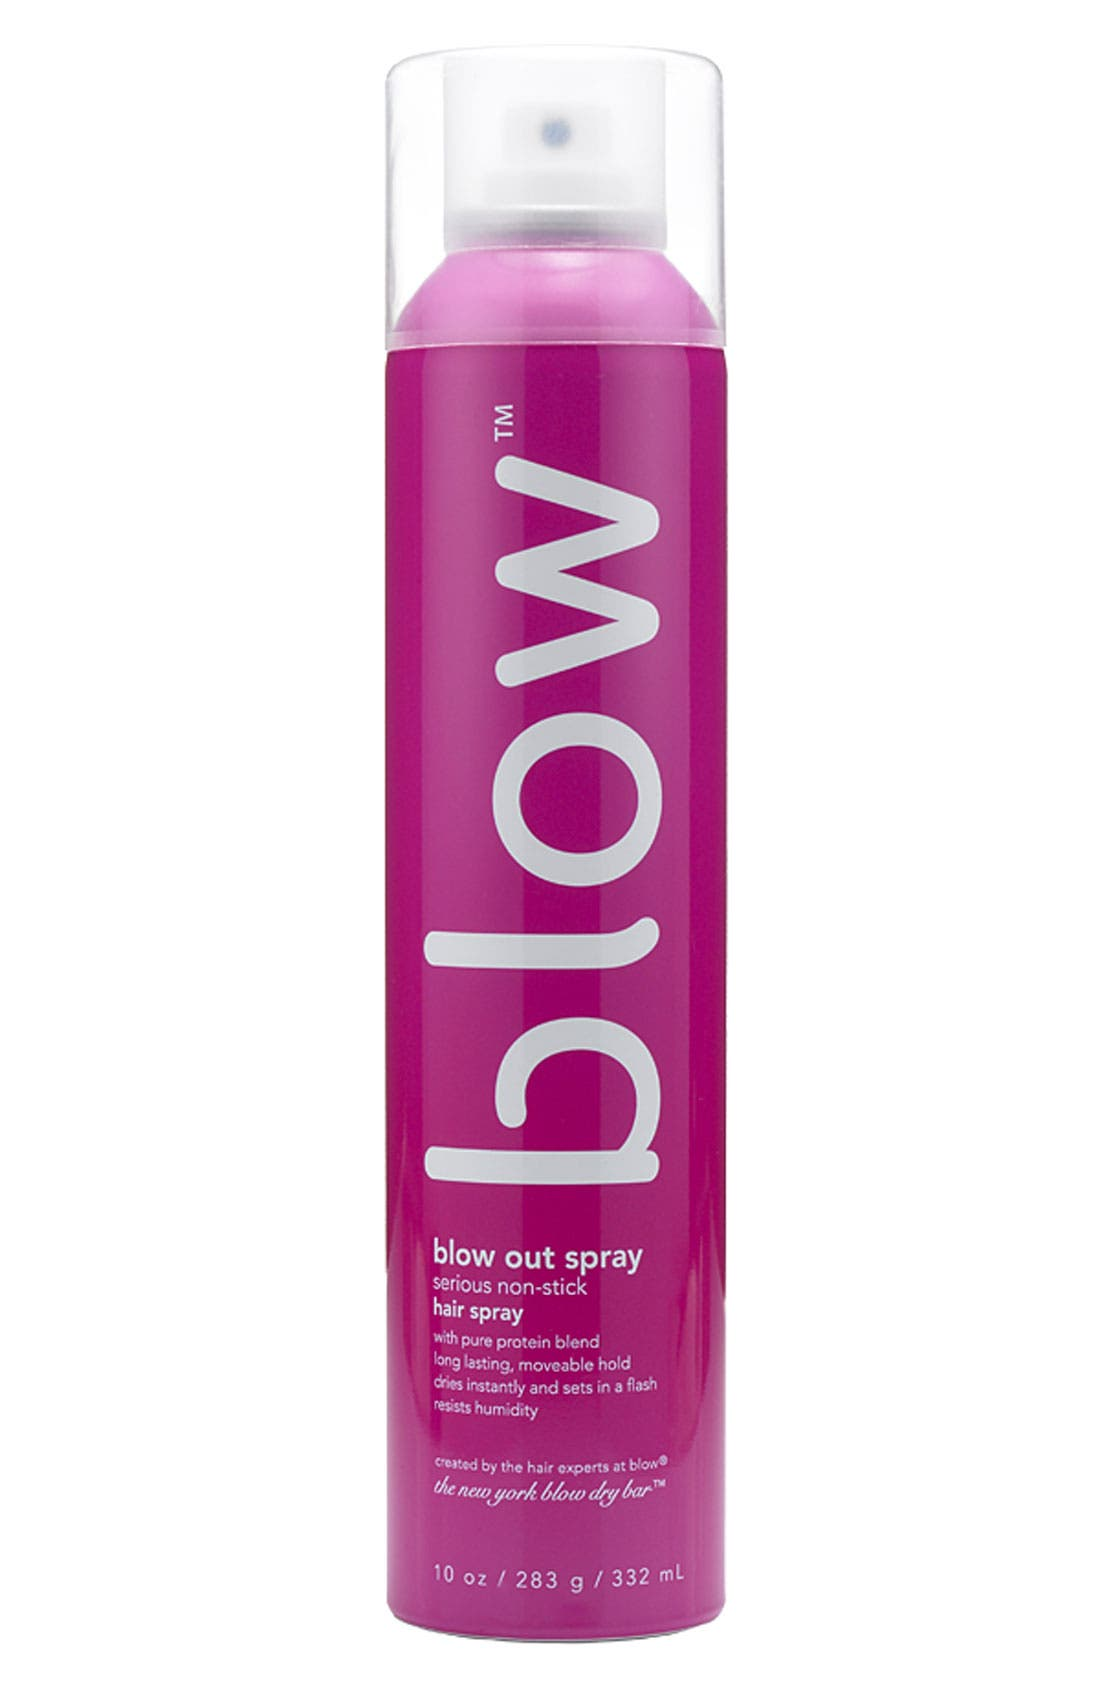 blowpro® 'blow out' serious nonstick hair spray